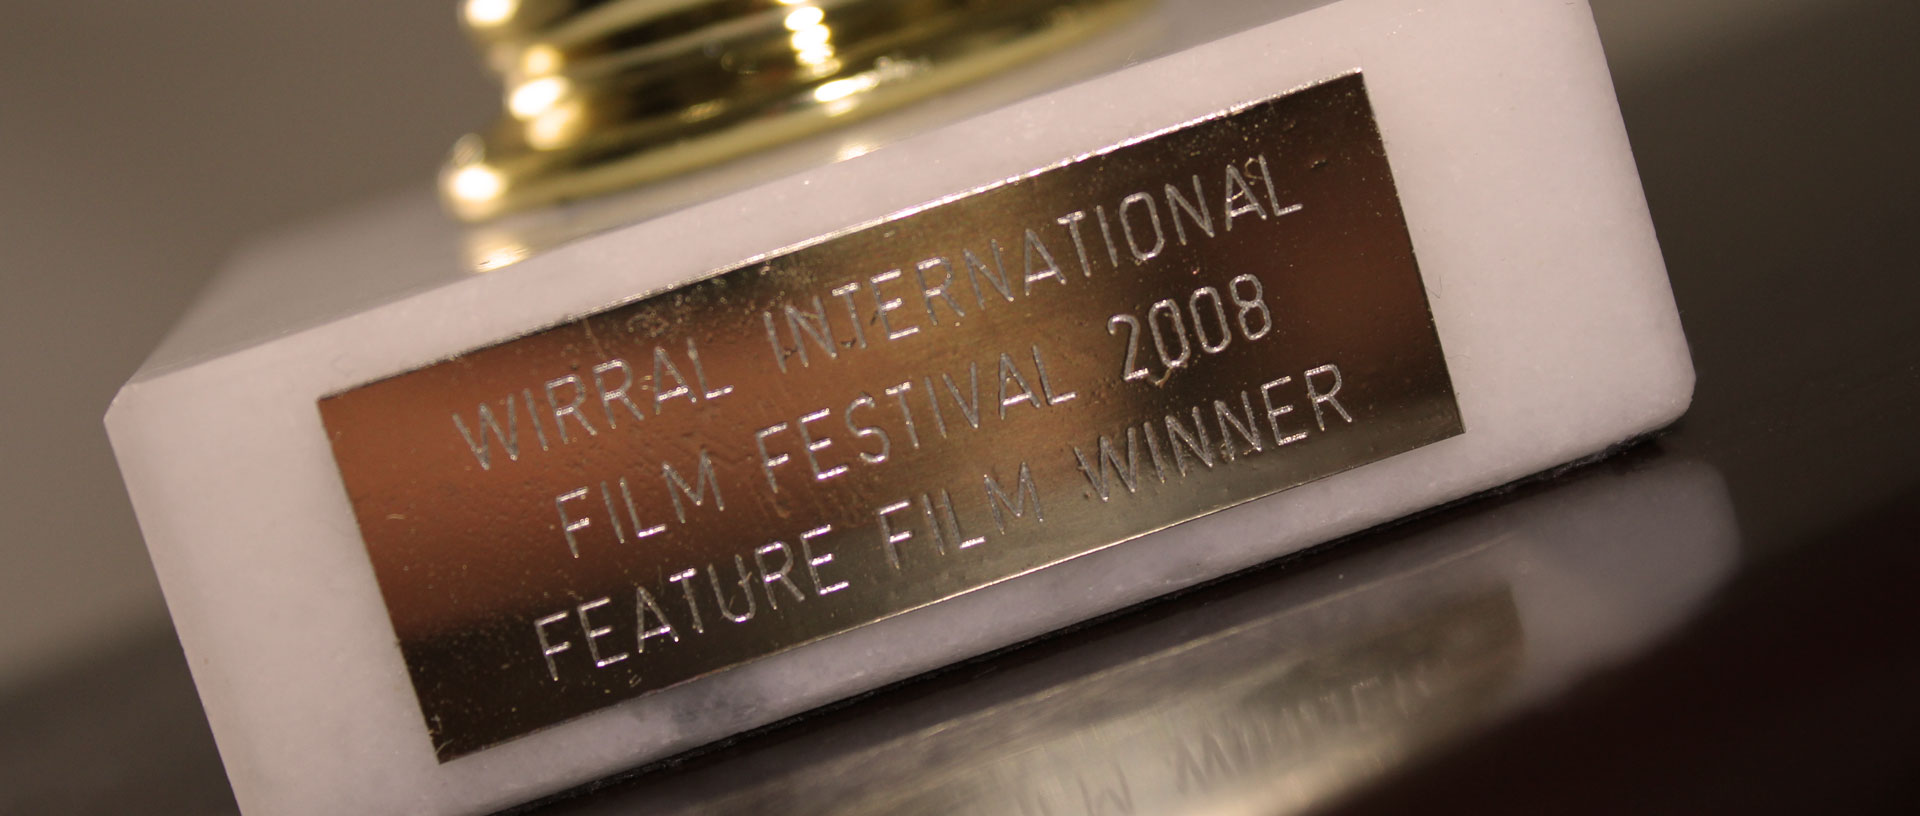 CNP-films-awards-02.jpg